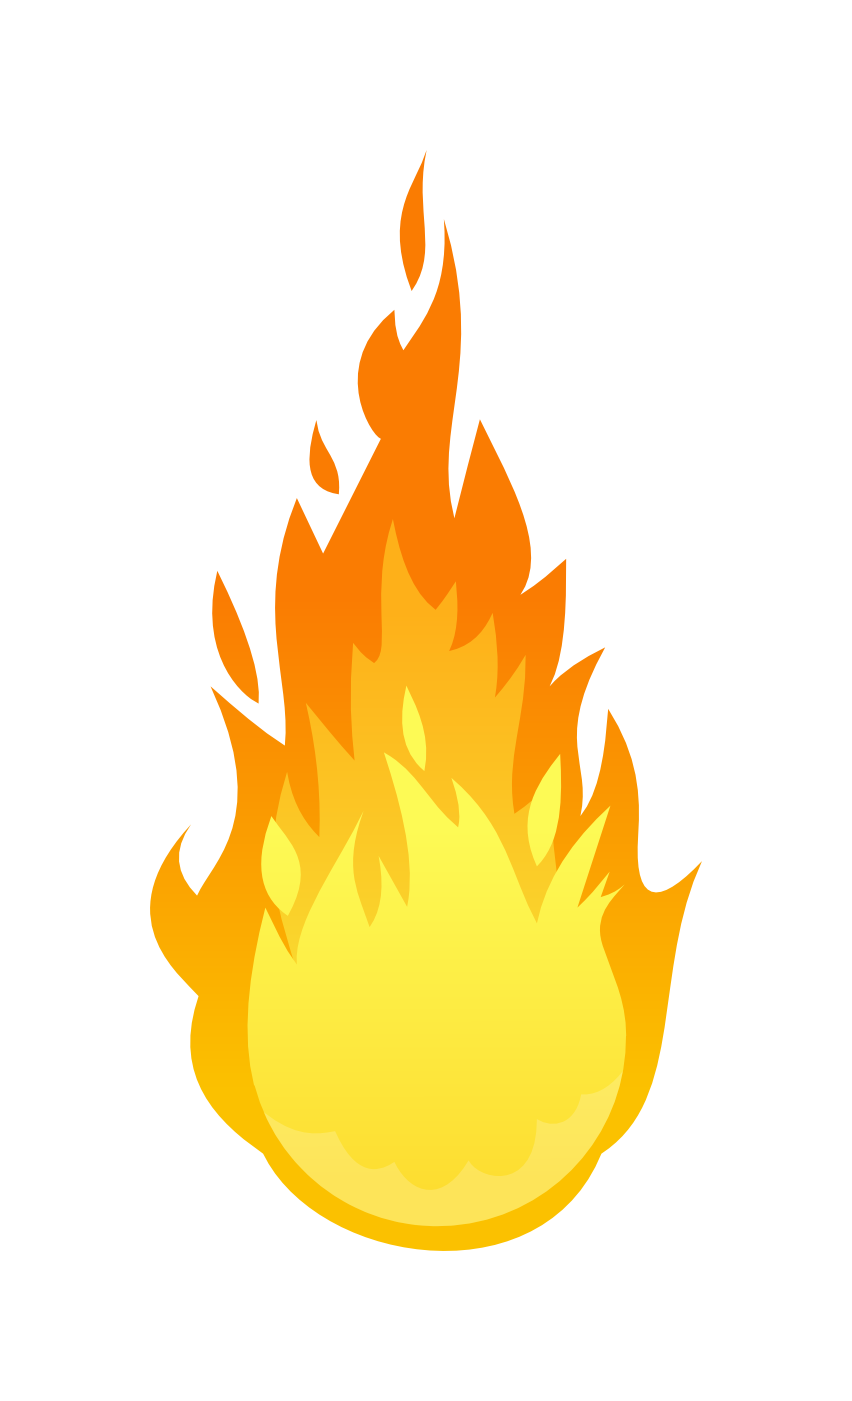 Fire By Misteraibo On Deviantart Fire Image Logo Design Free Templates Flame Picture